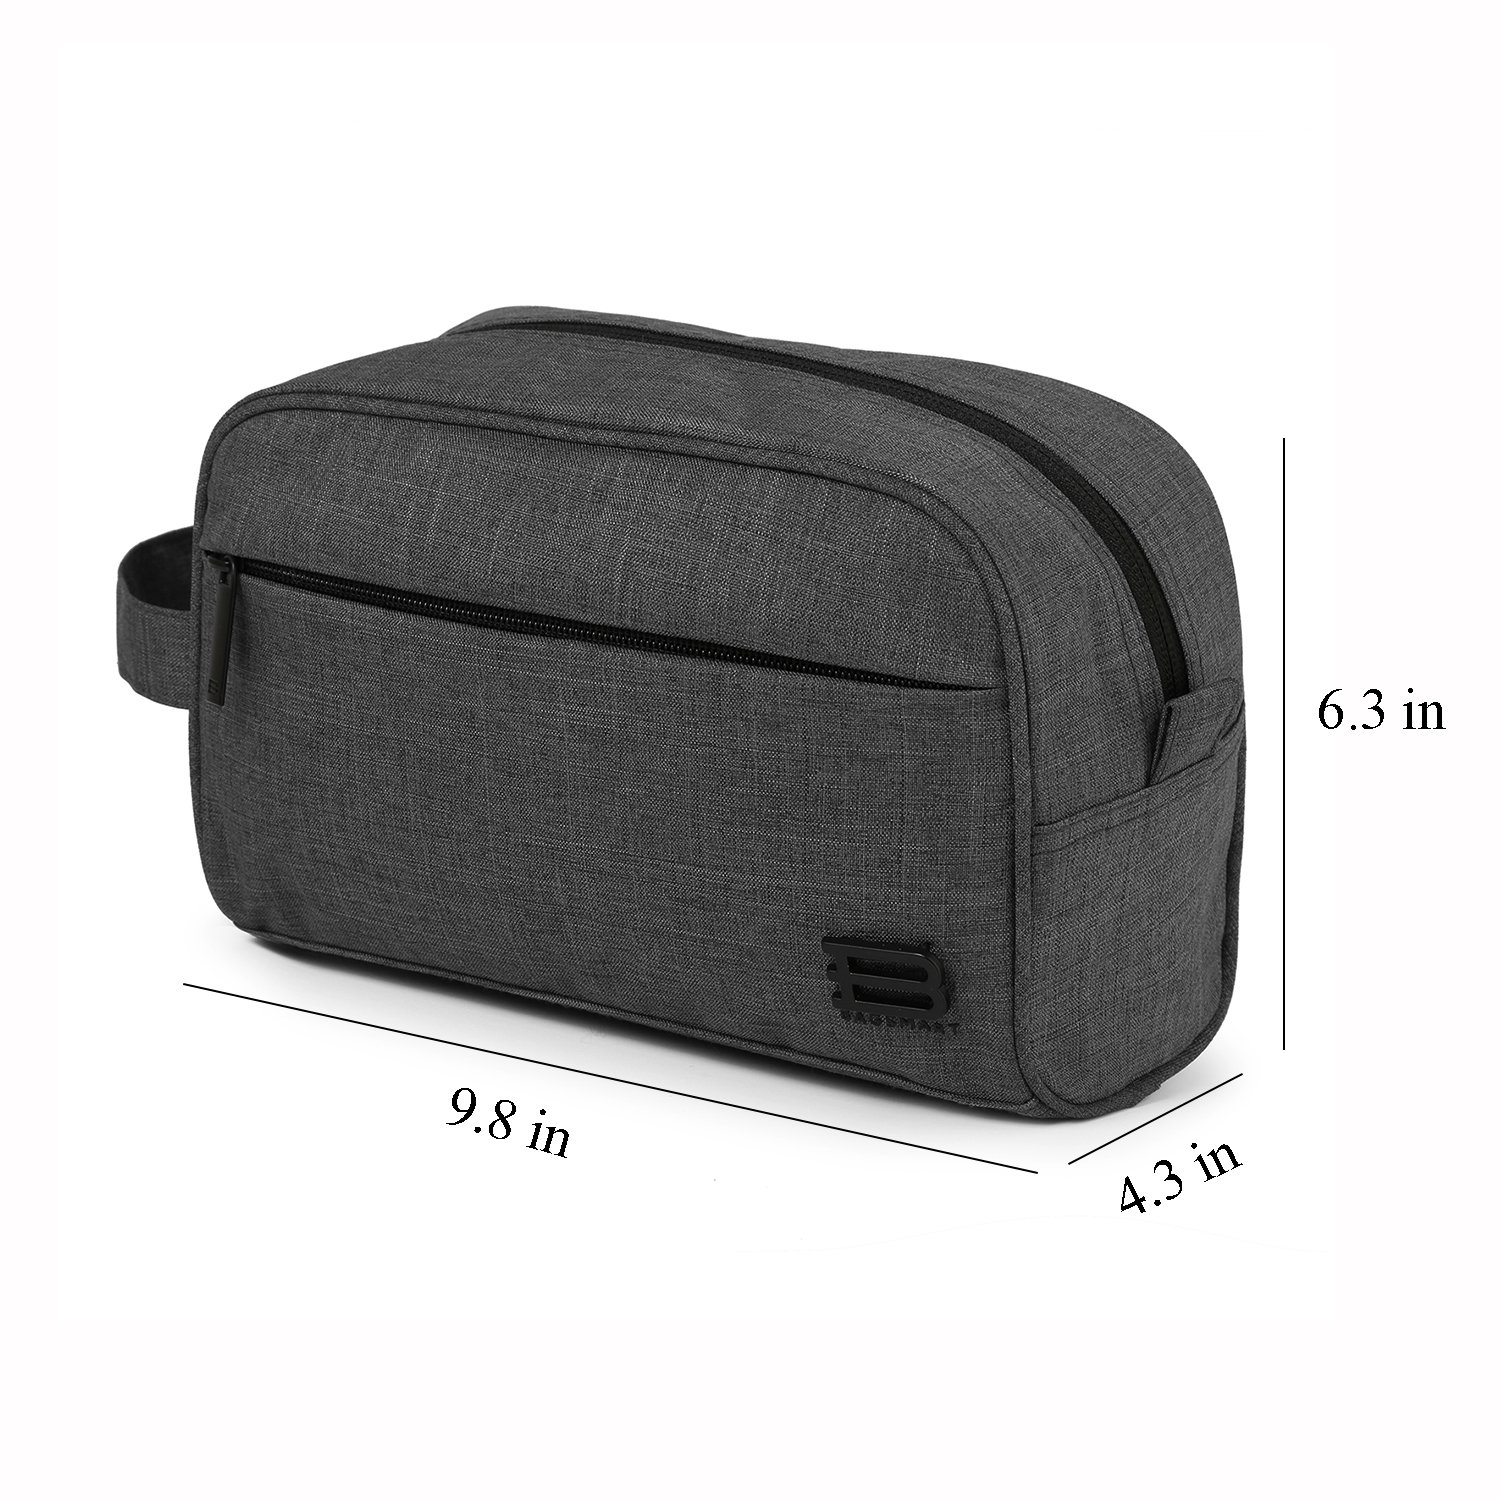 d94401cd2f BAGSMART Compact Water Resistant Toiletry Travel Bag Organizer Handy Makeup  Cosmetic Bag Carry on Dopp Shaving Kit for ...